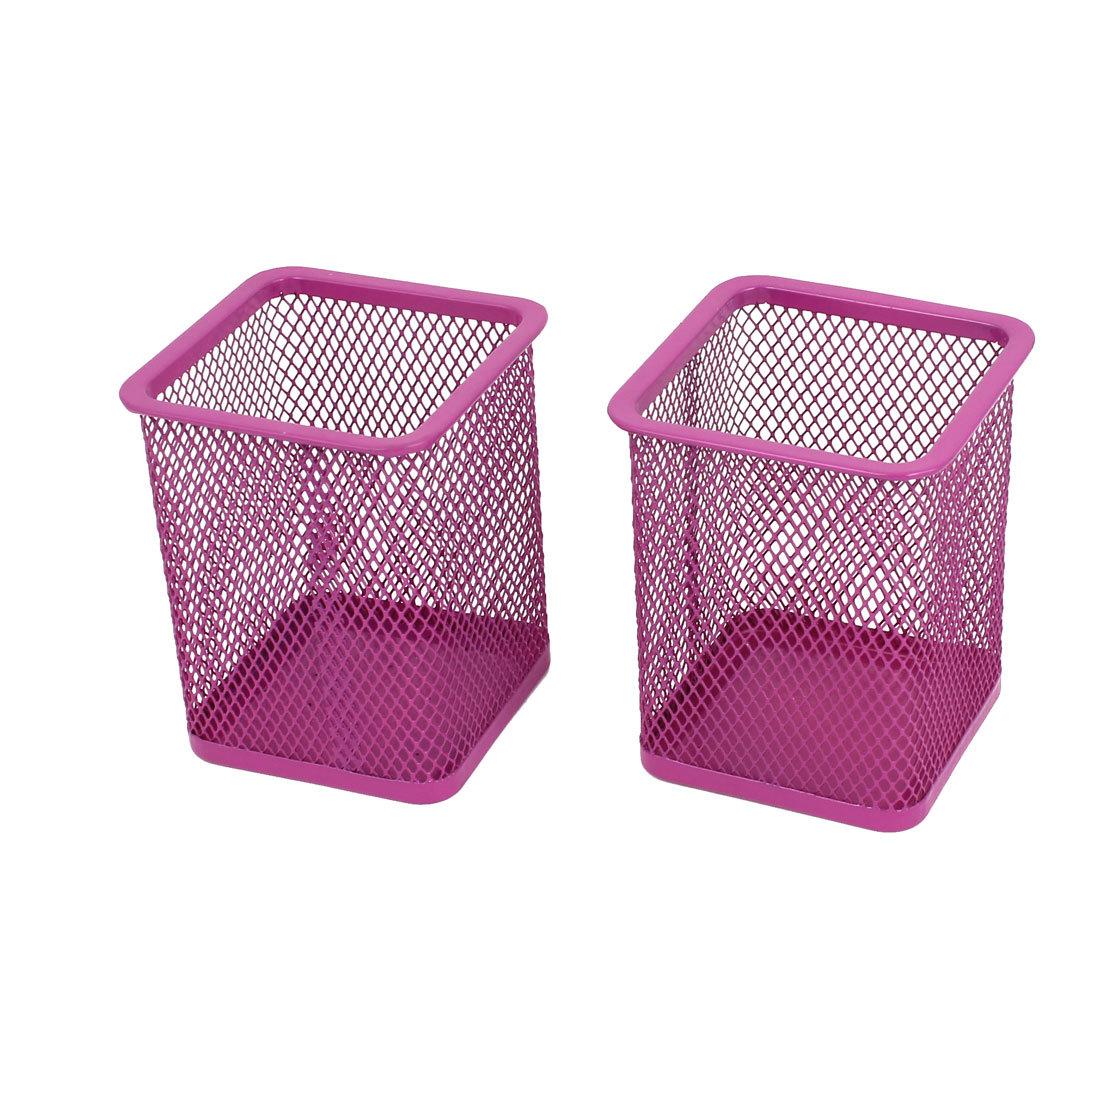 2Pcs Fushsia Metal Rectangle Meshy Style Pen Pencil Ruler Holder Container Desk Organizer 9.7cm High